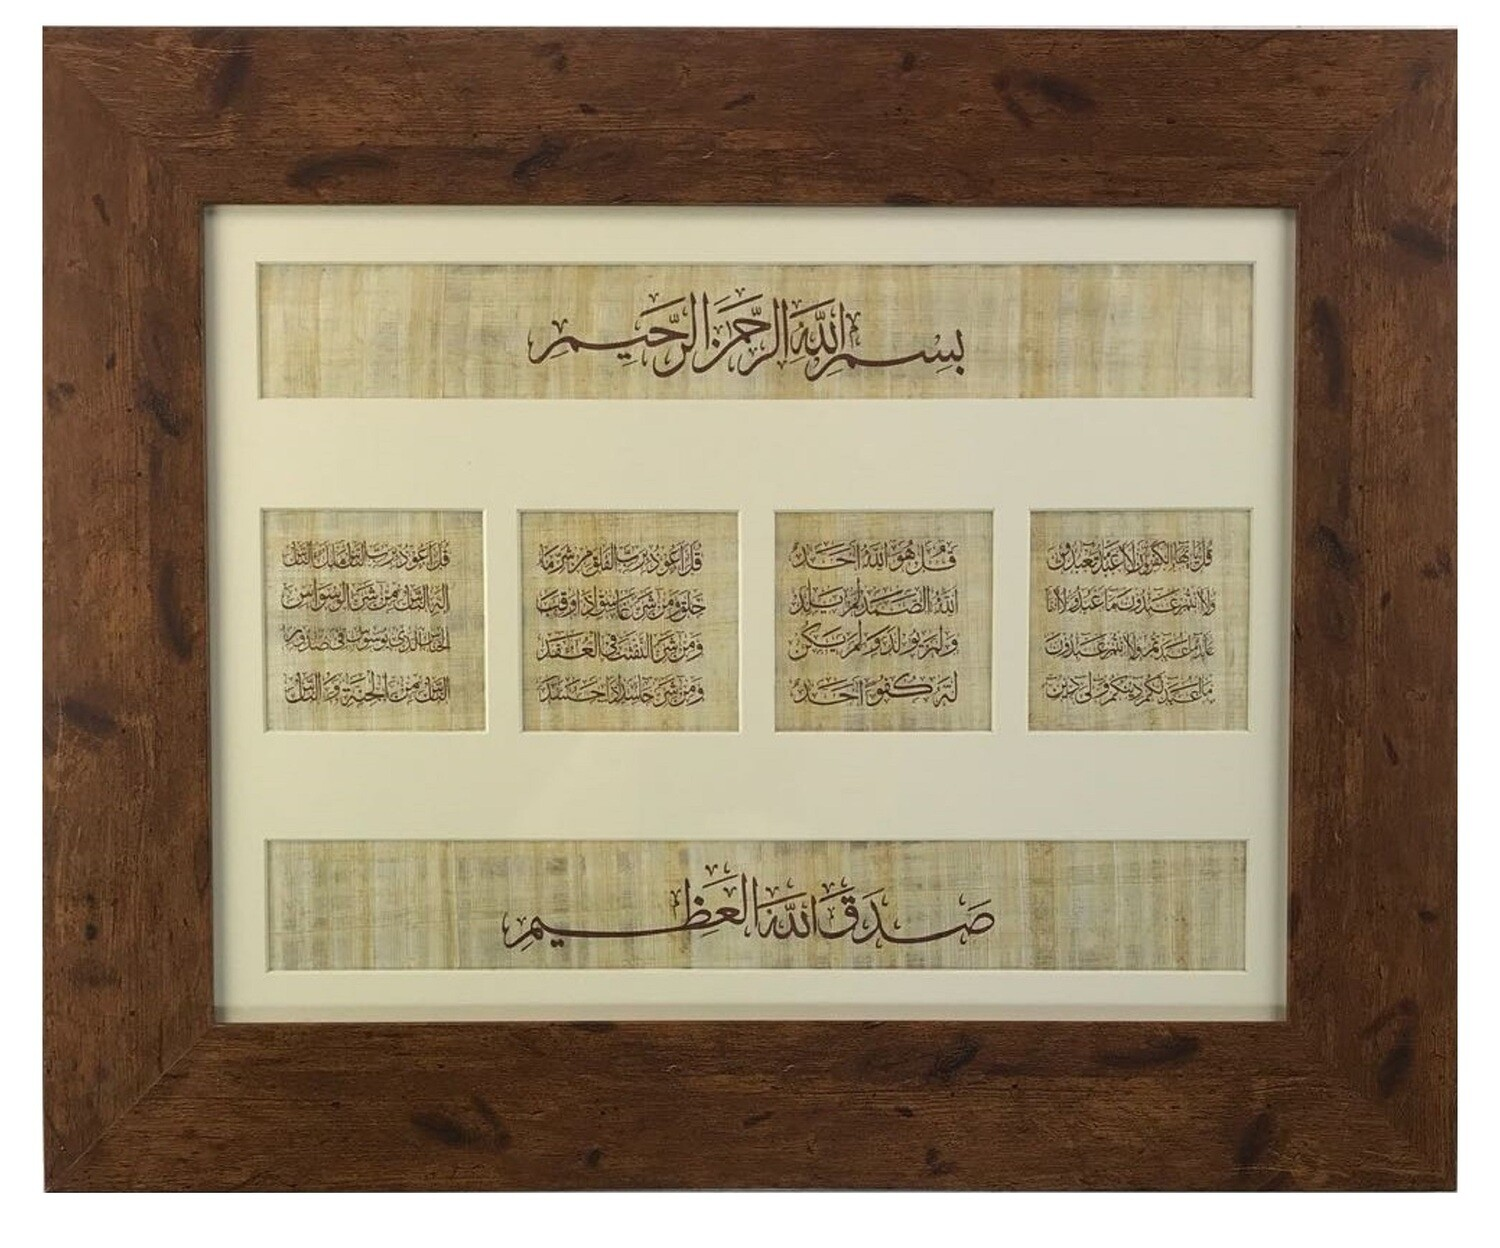 The Four Quls on Papyrus in Walnut Brown Frame